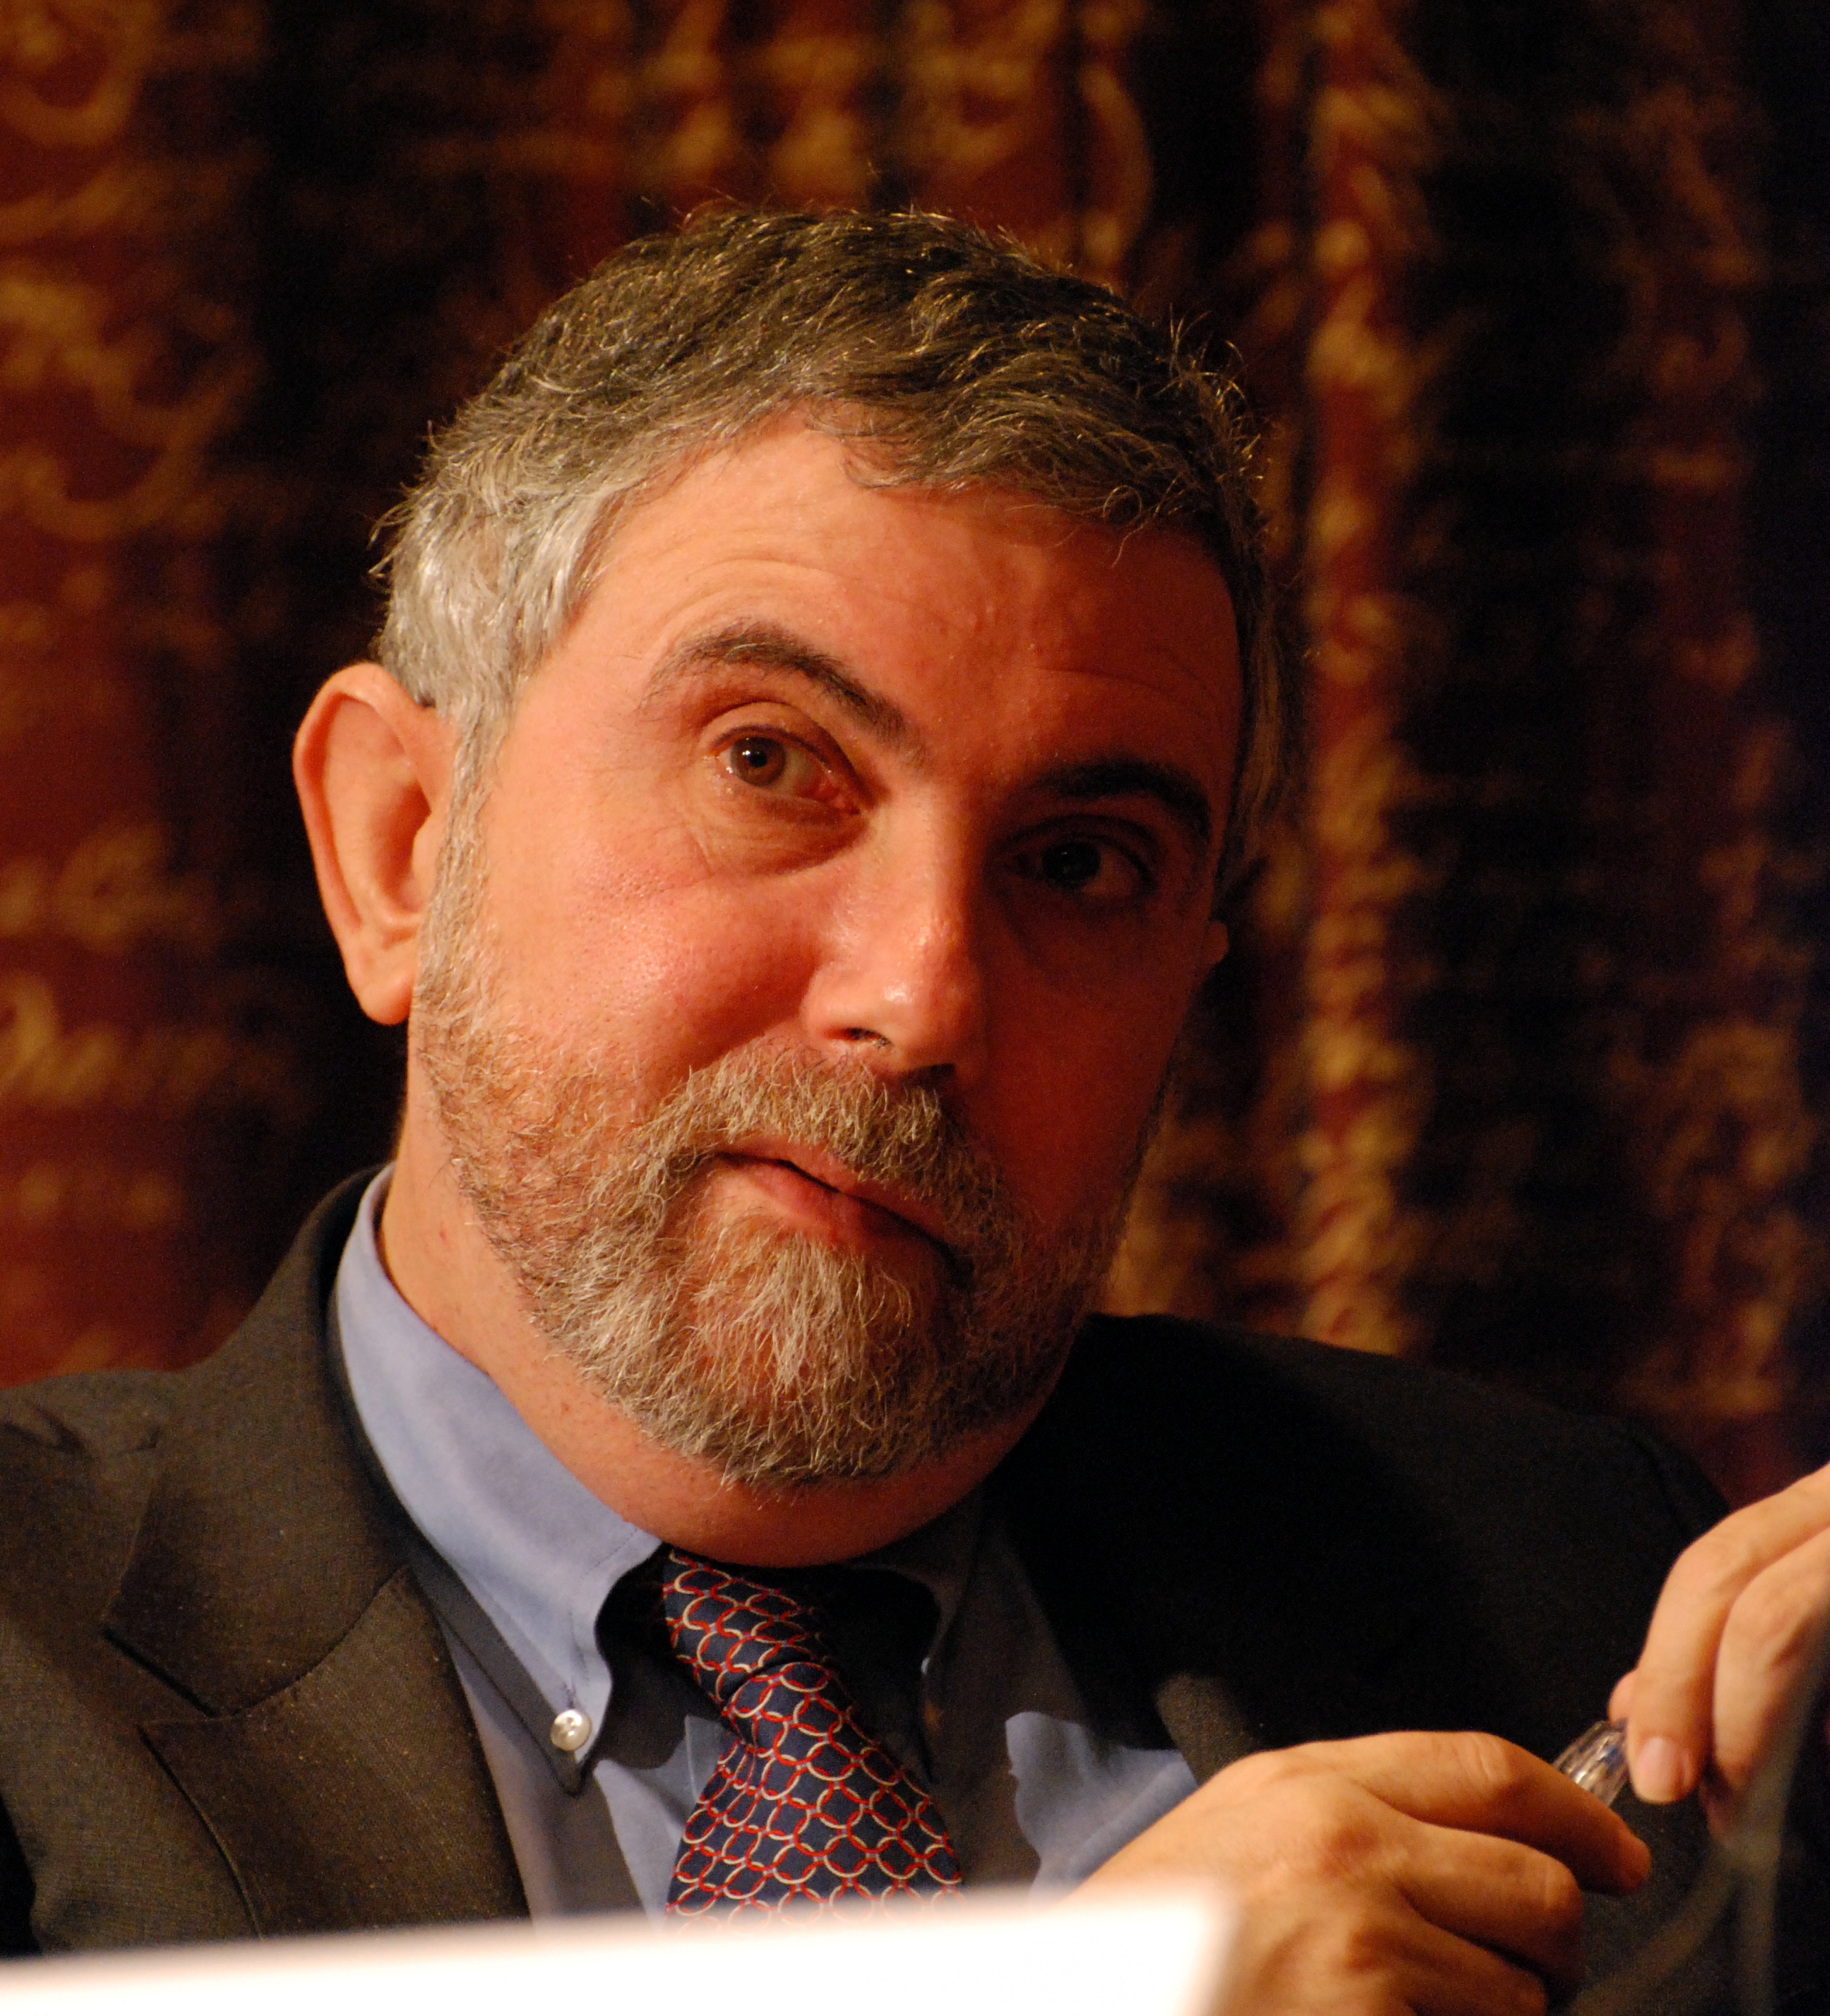 the life and contributions of paul robin krugman on american economy